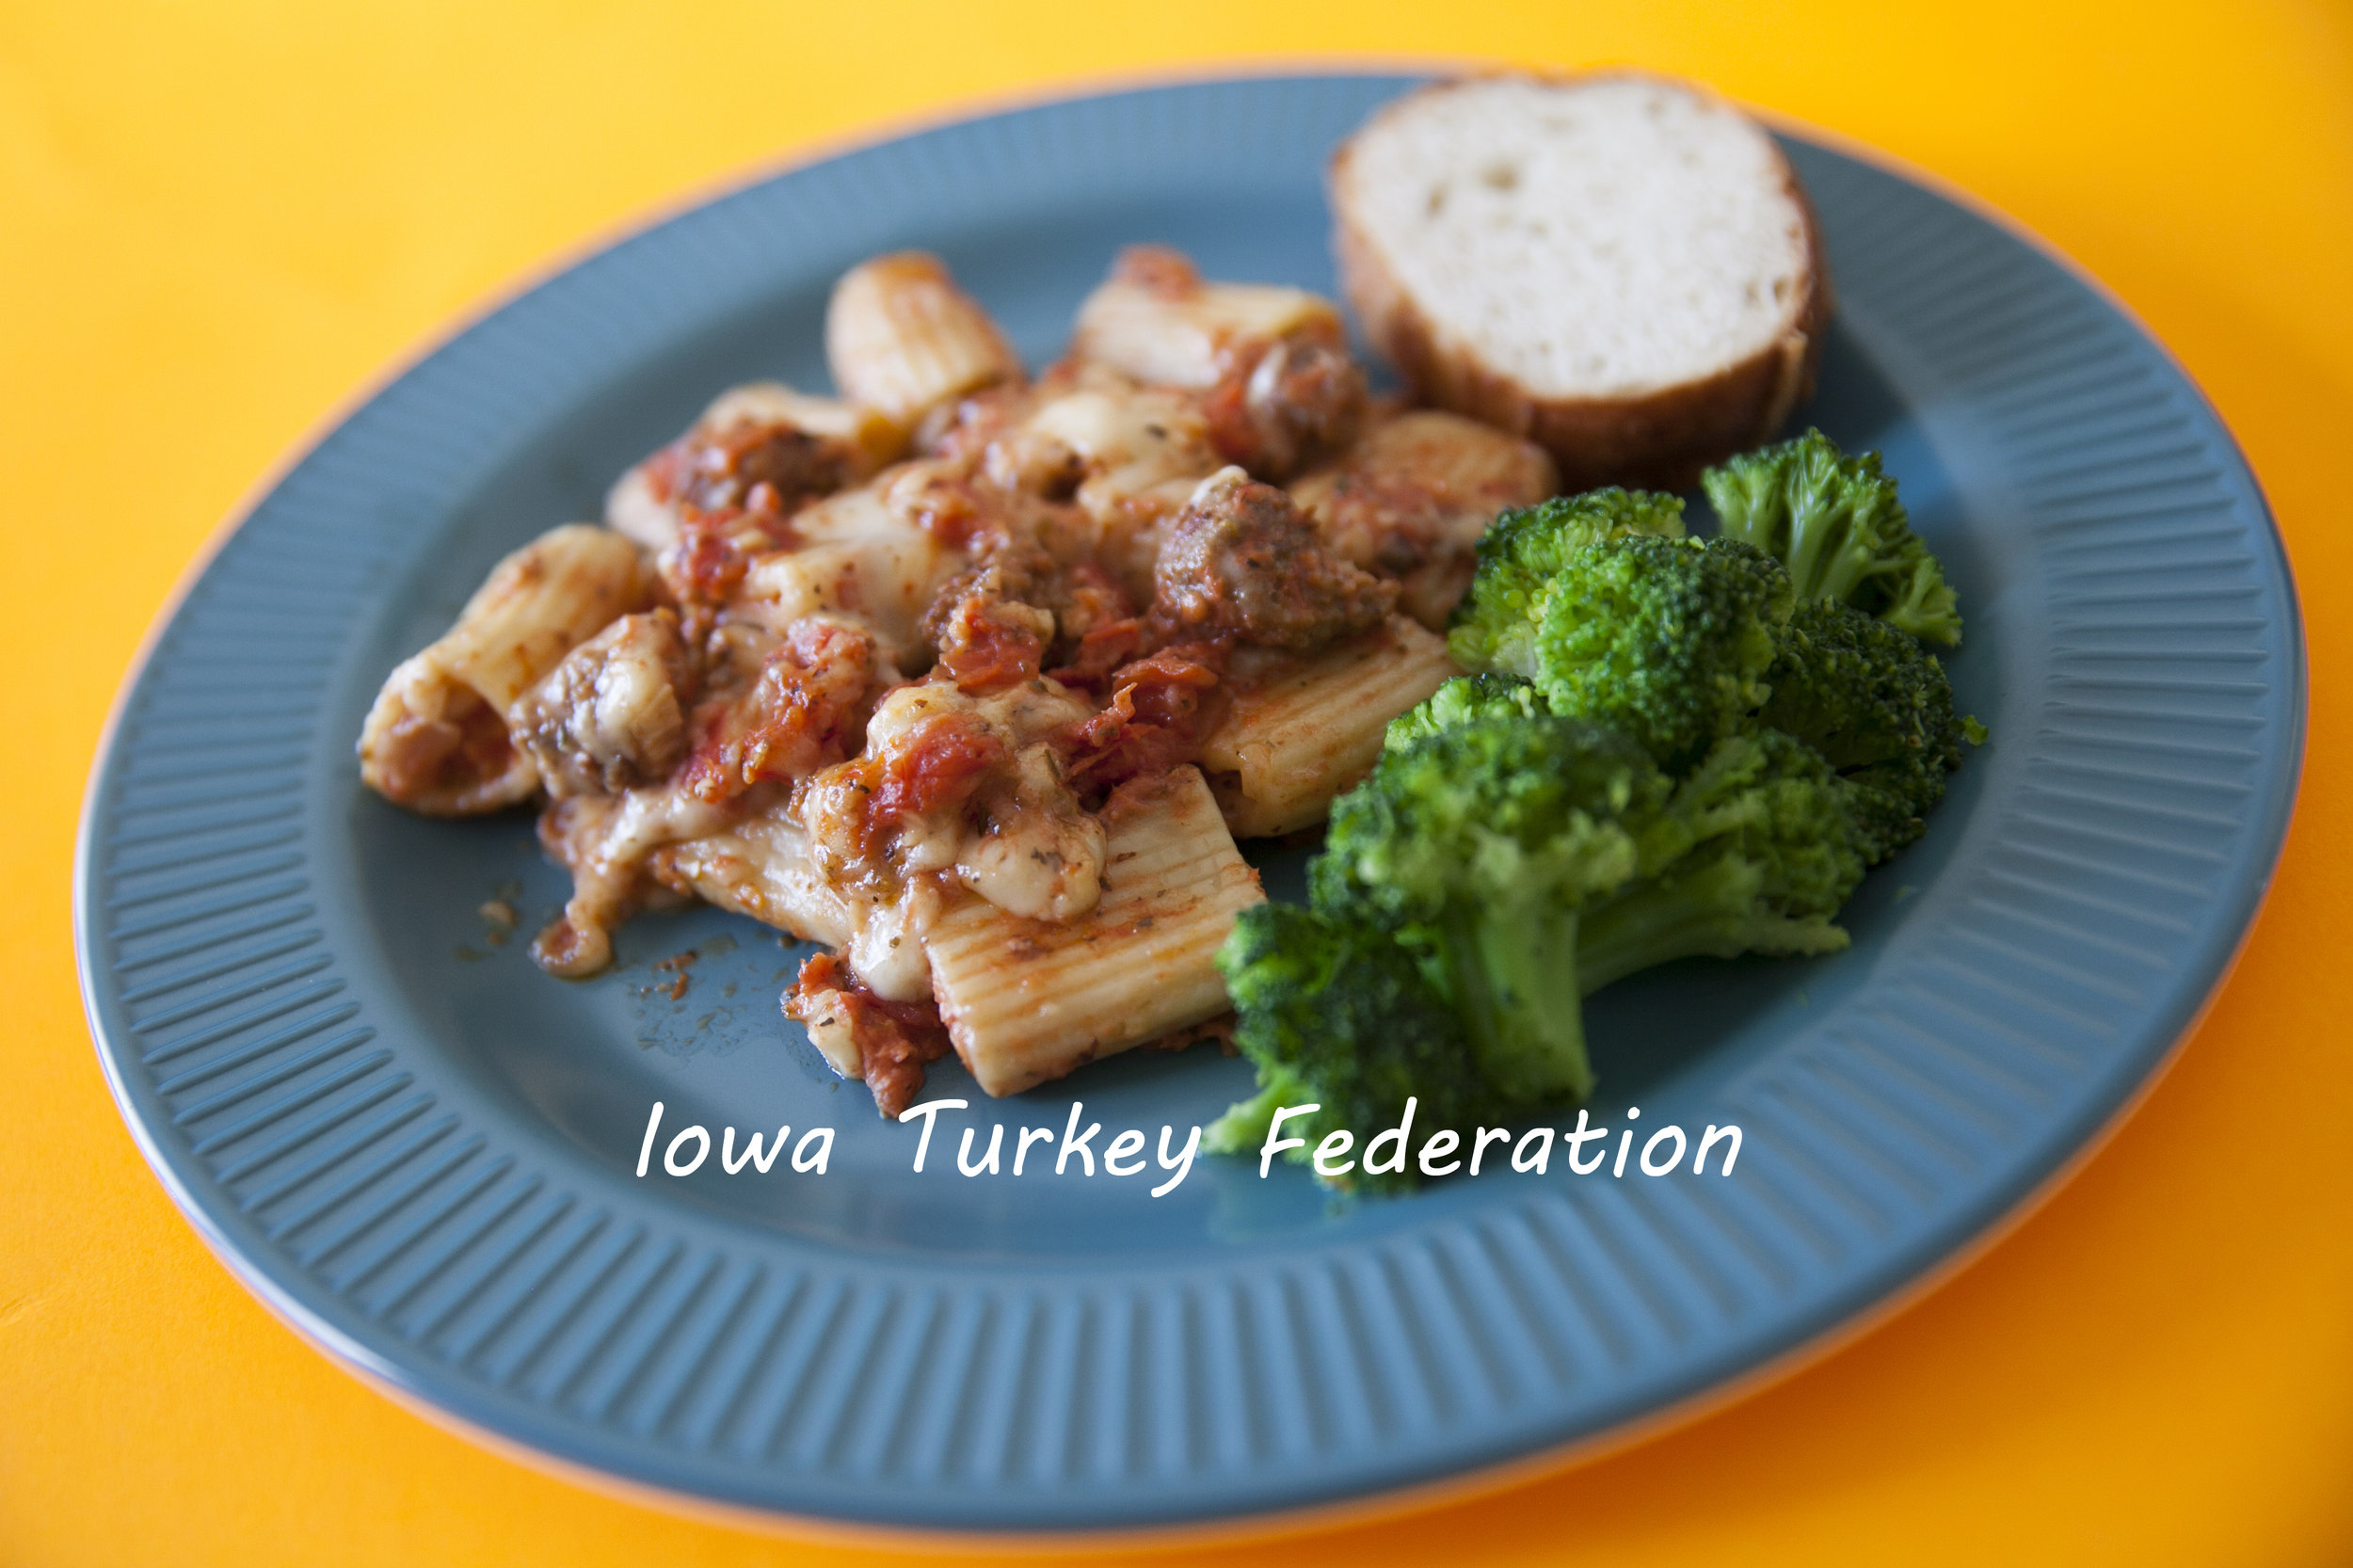 Baked pasta with turkey sausage and Fontina edited.jpg